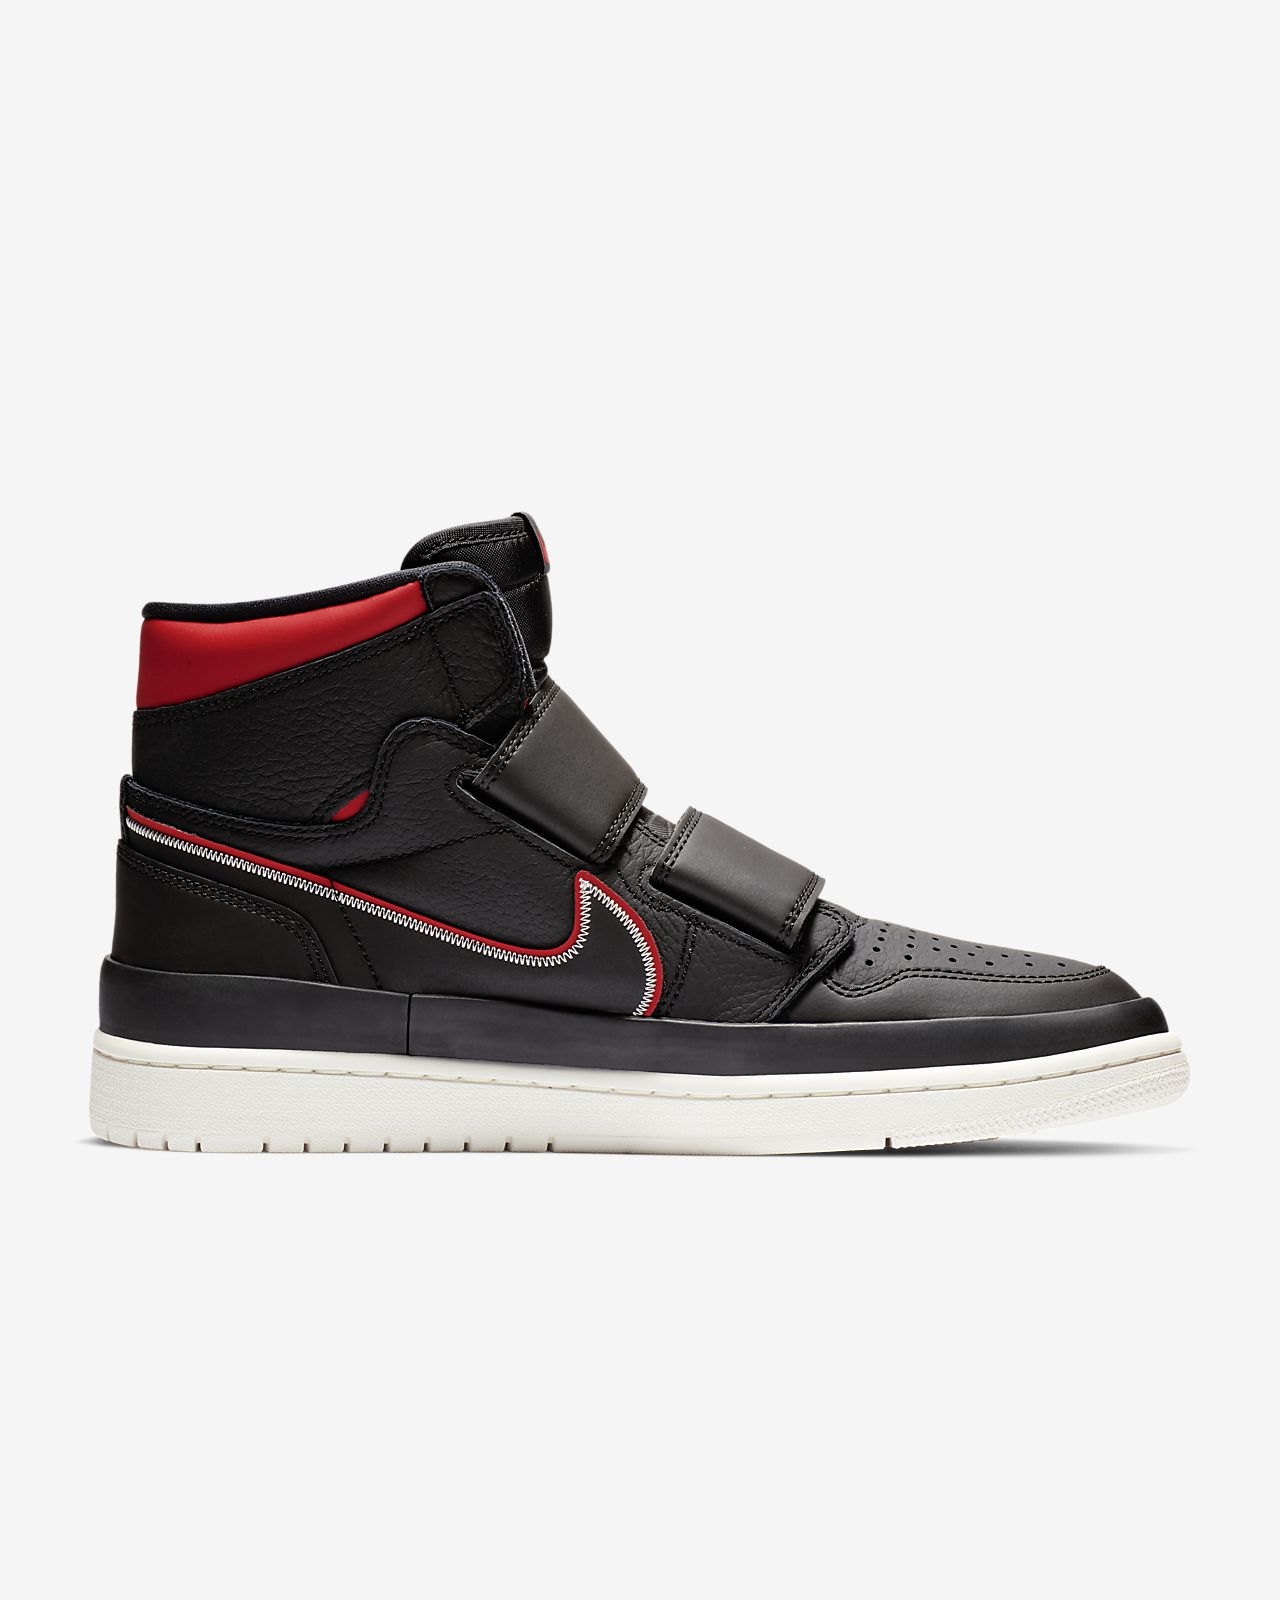 774ccc9f8377 Air Jordan 1 Retro High Double-Strap Men s Shoe. Nike.com GB